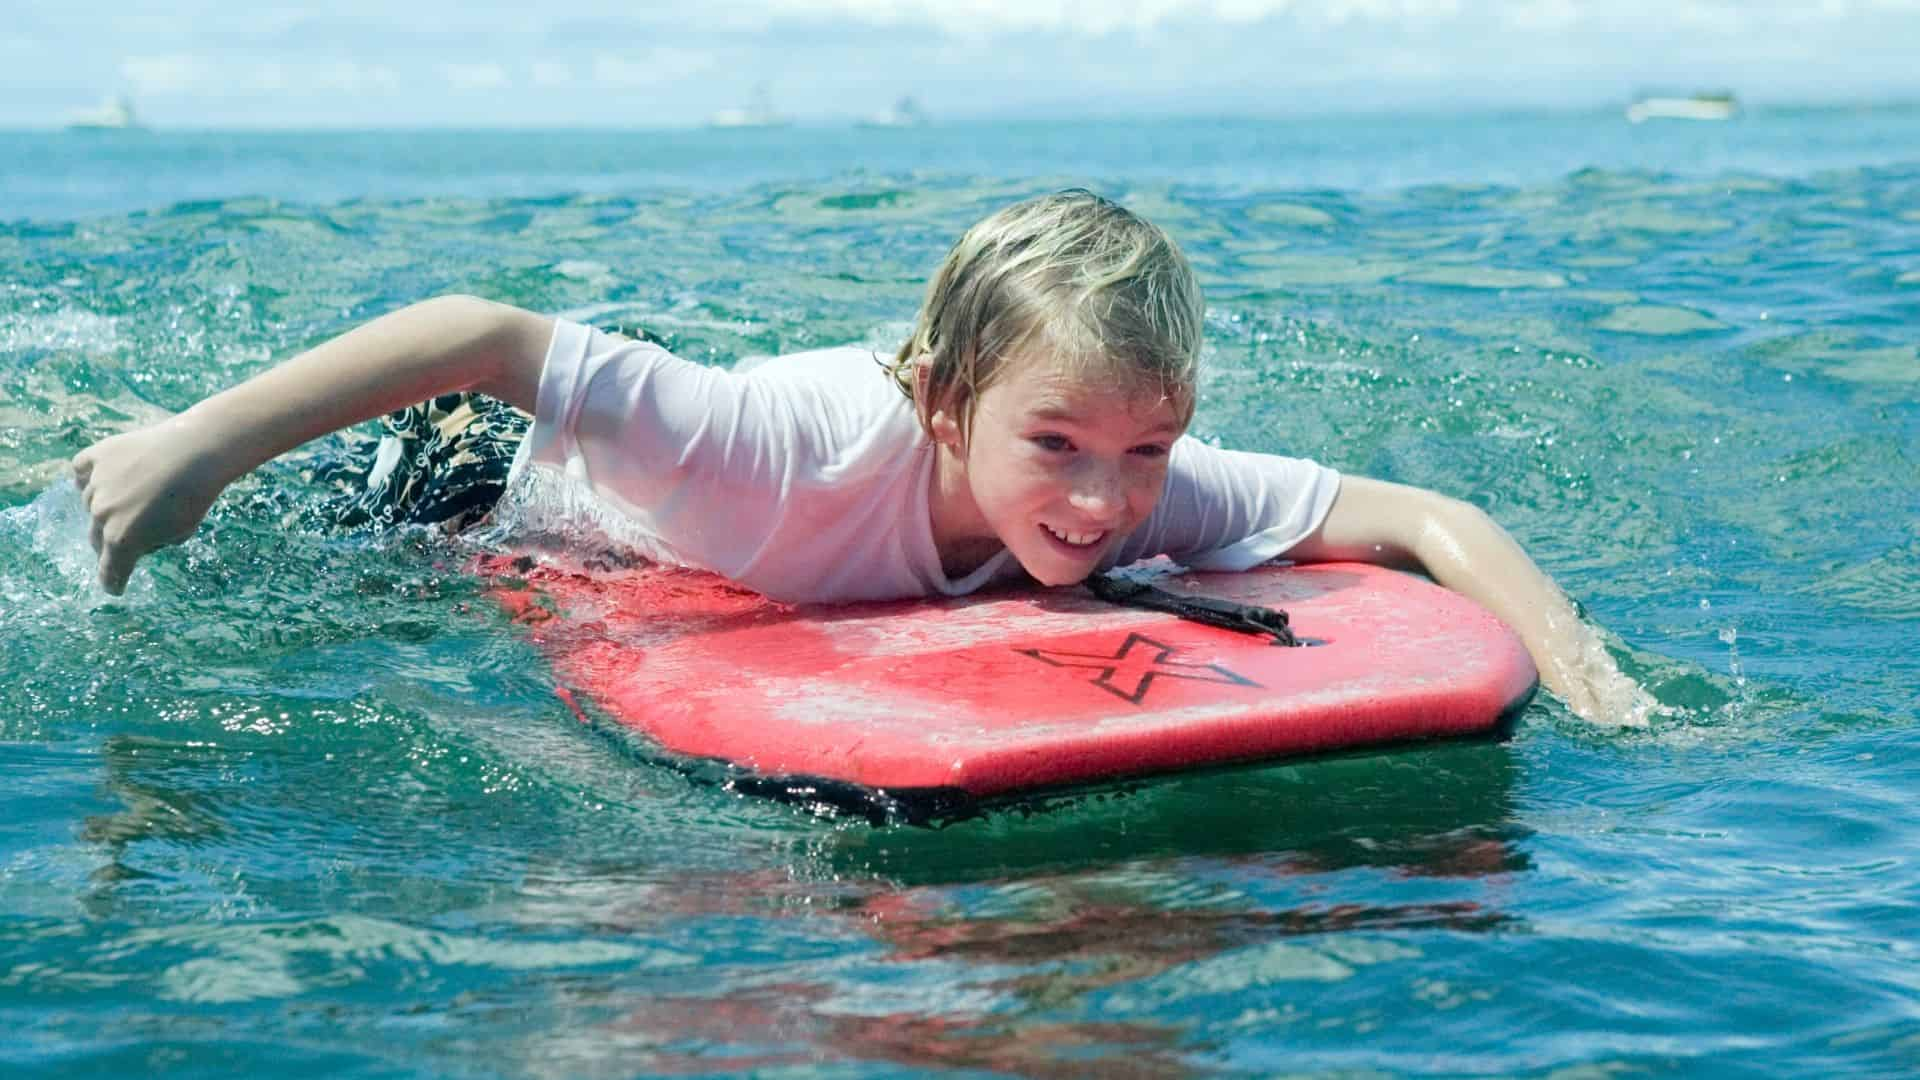 A young boy bodyboards in the surf.